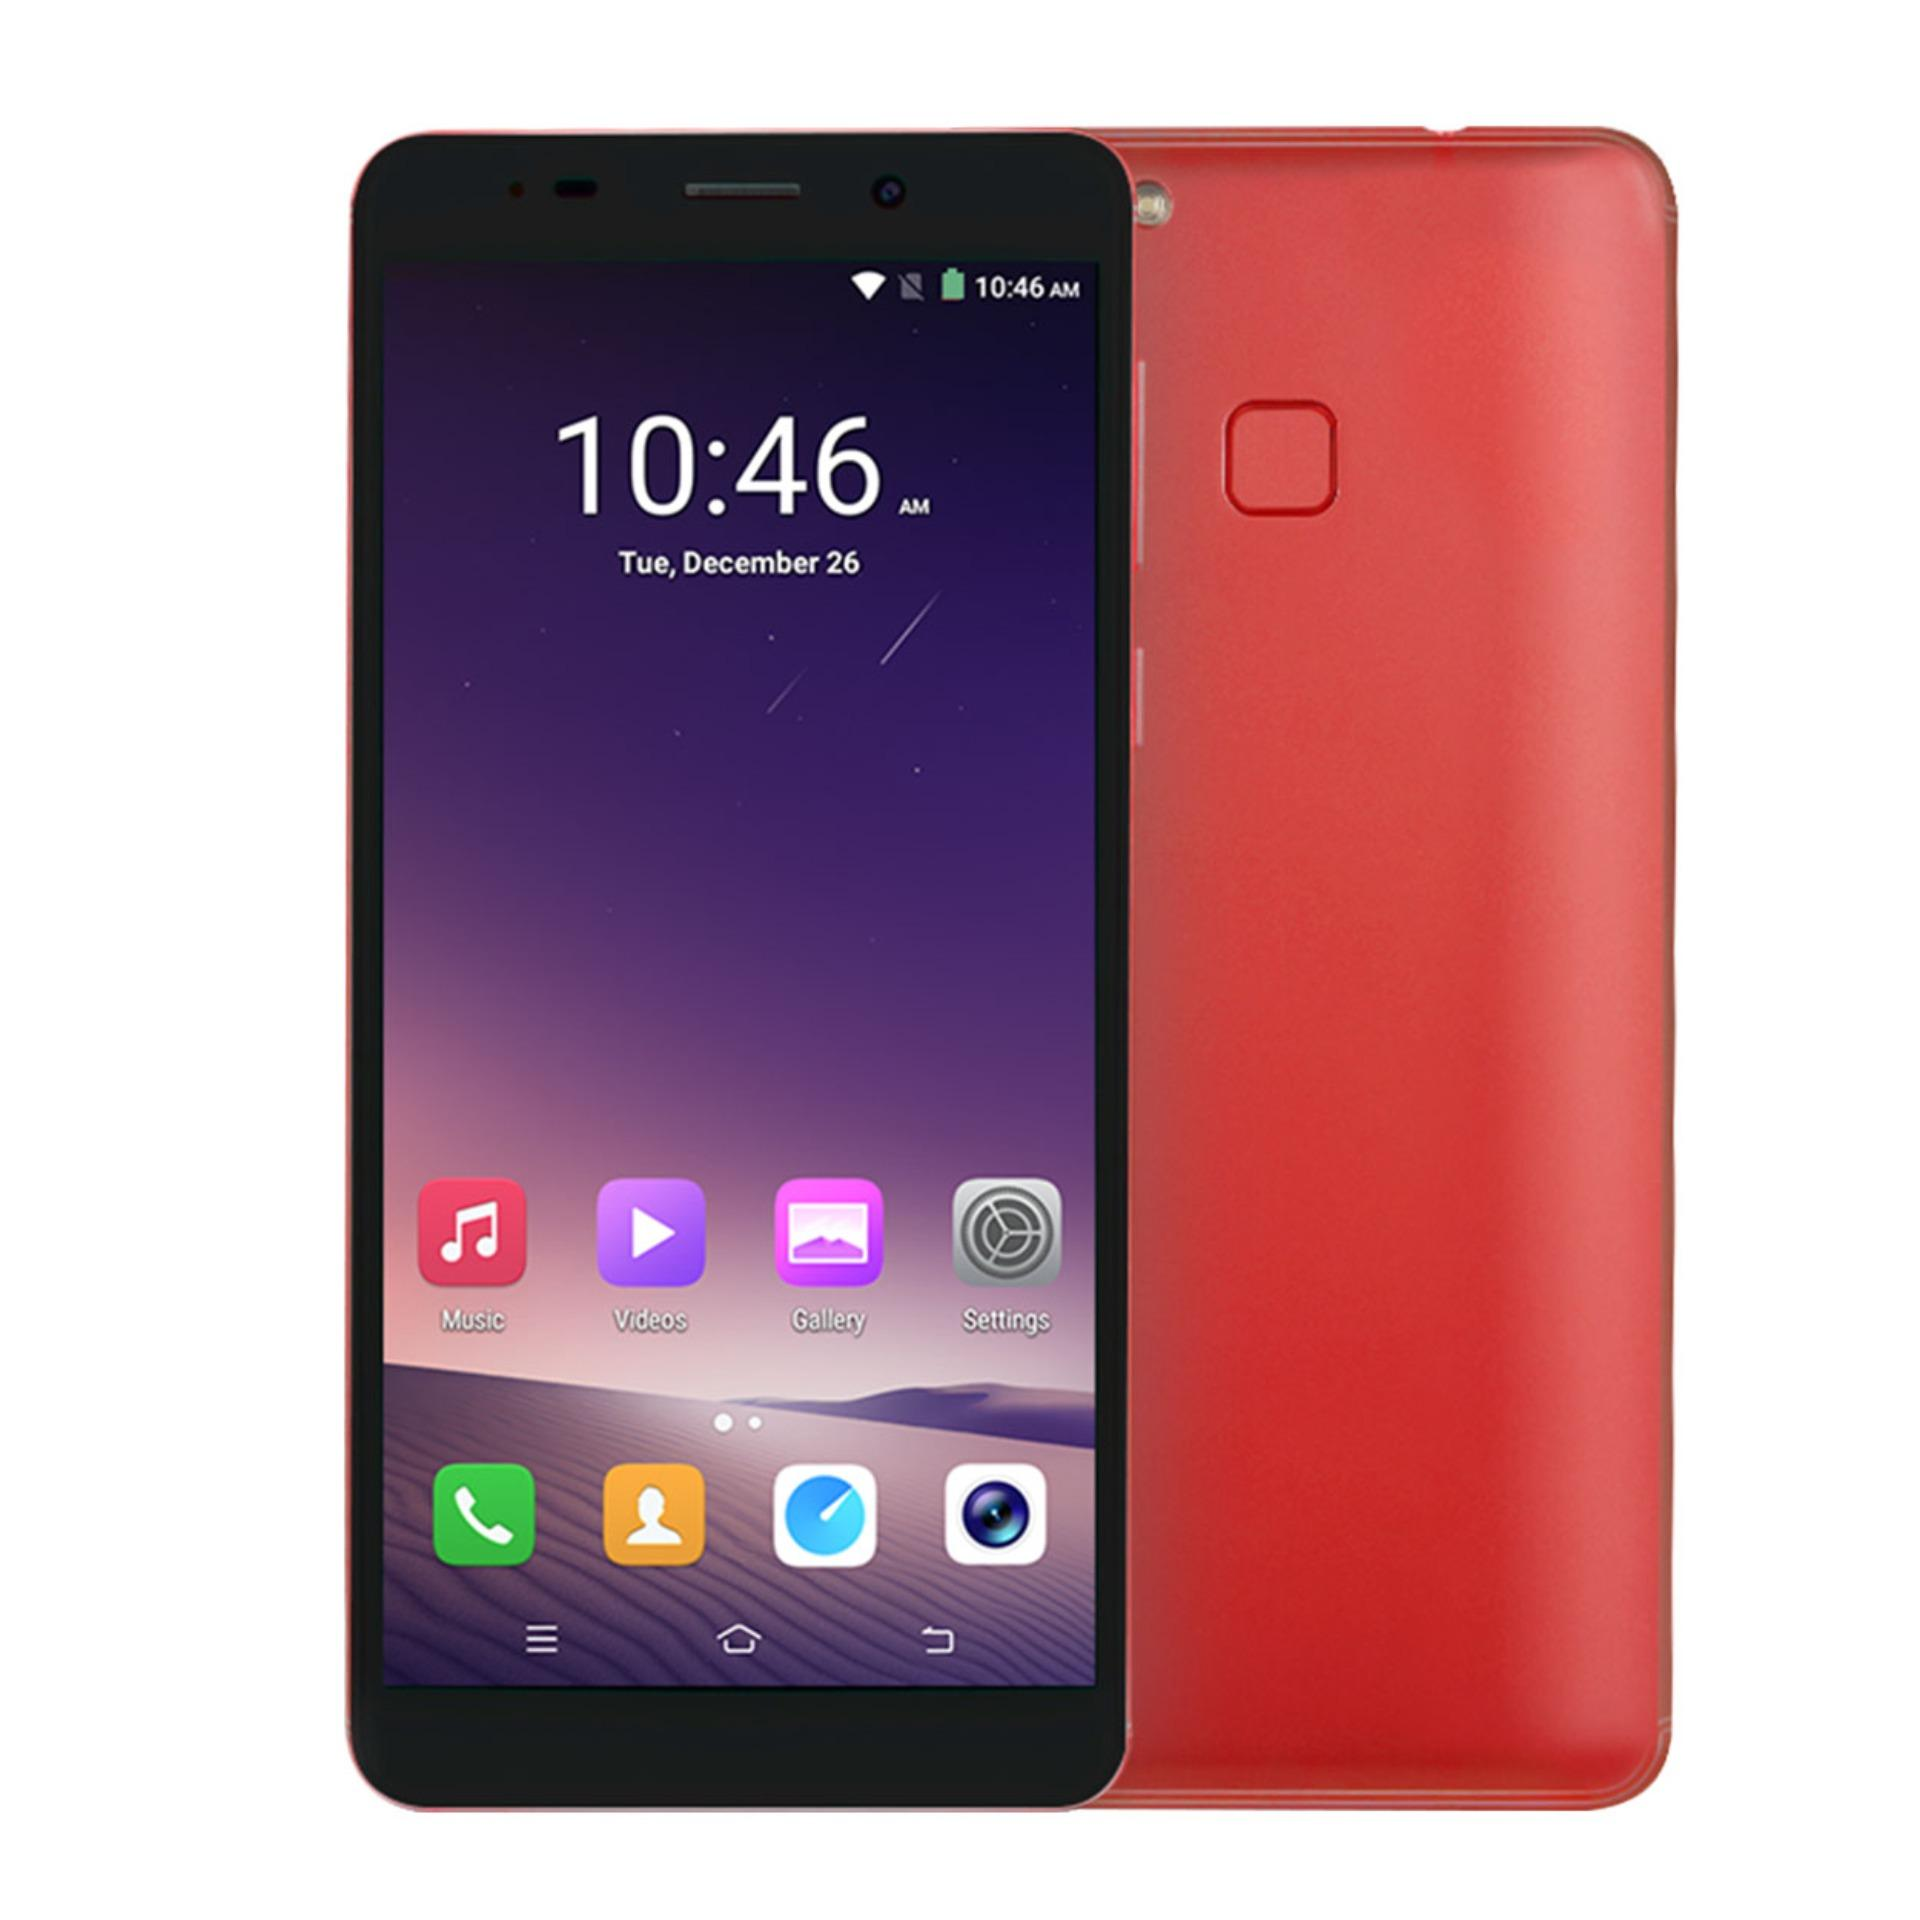 Ckk Phone Philippines Mobile For Sale Prices Reviews Lazada Voucher 3 1gb V7 Plus Ram 8gb Rom Red